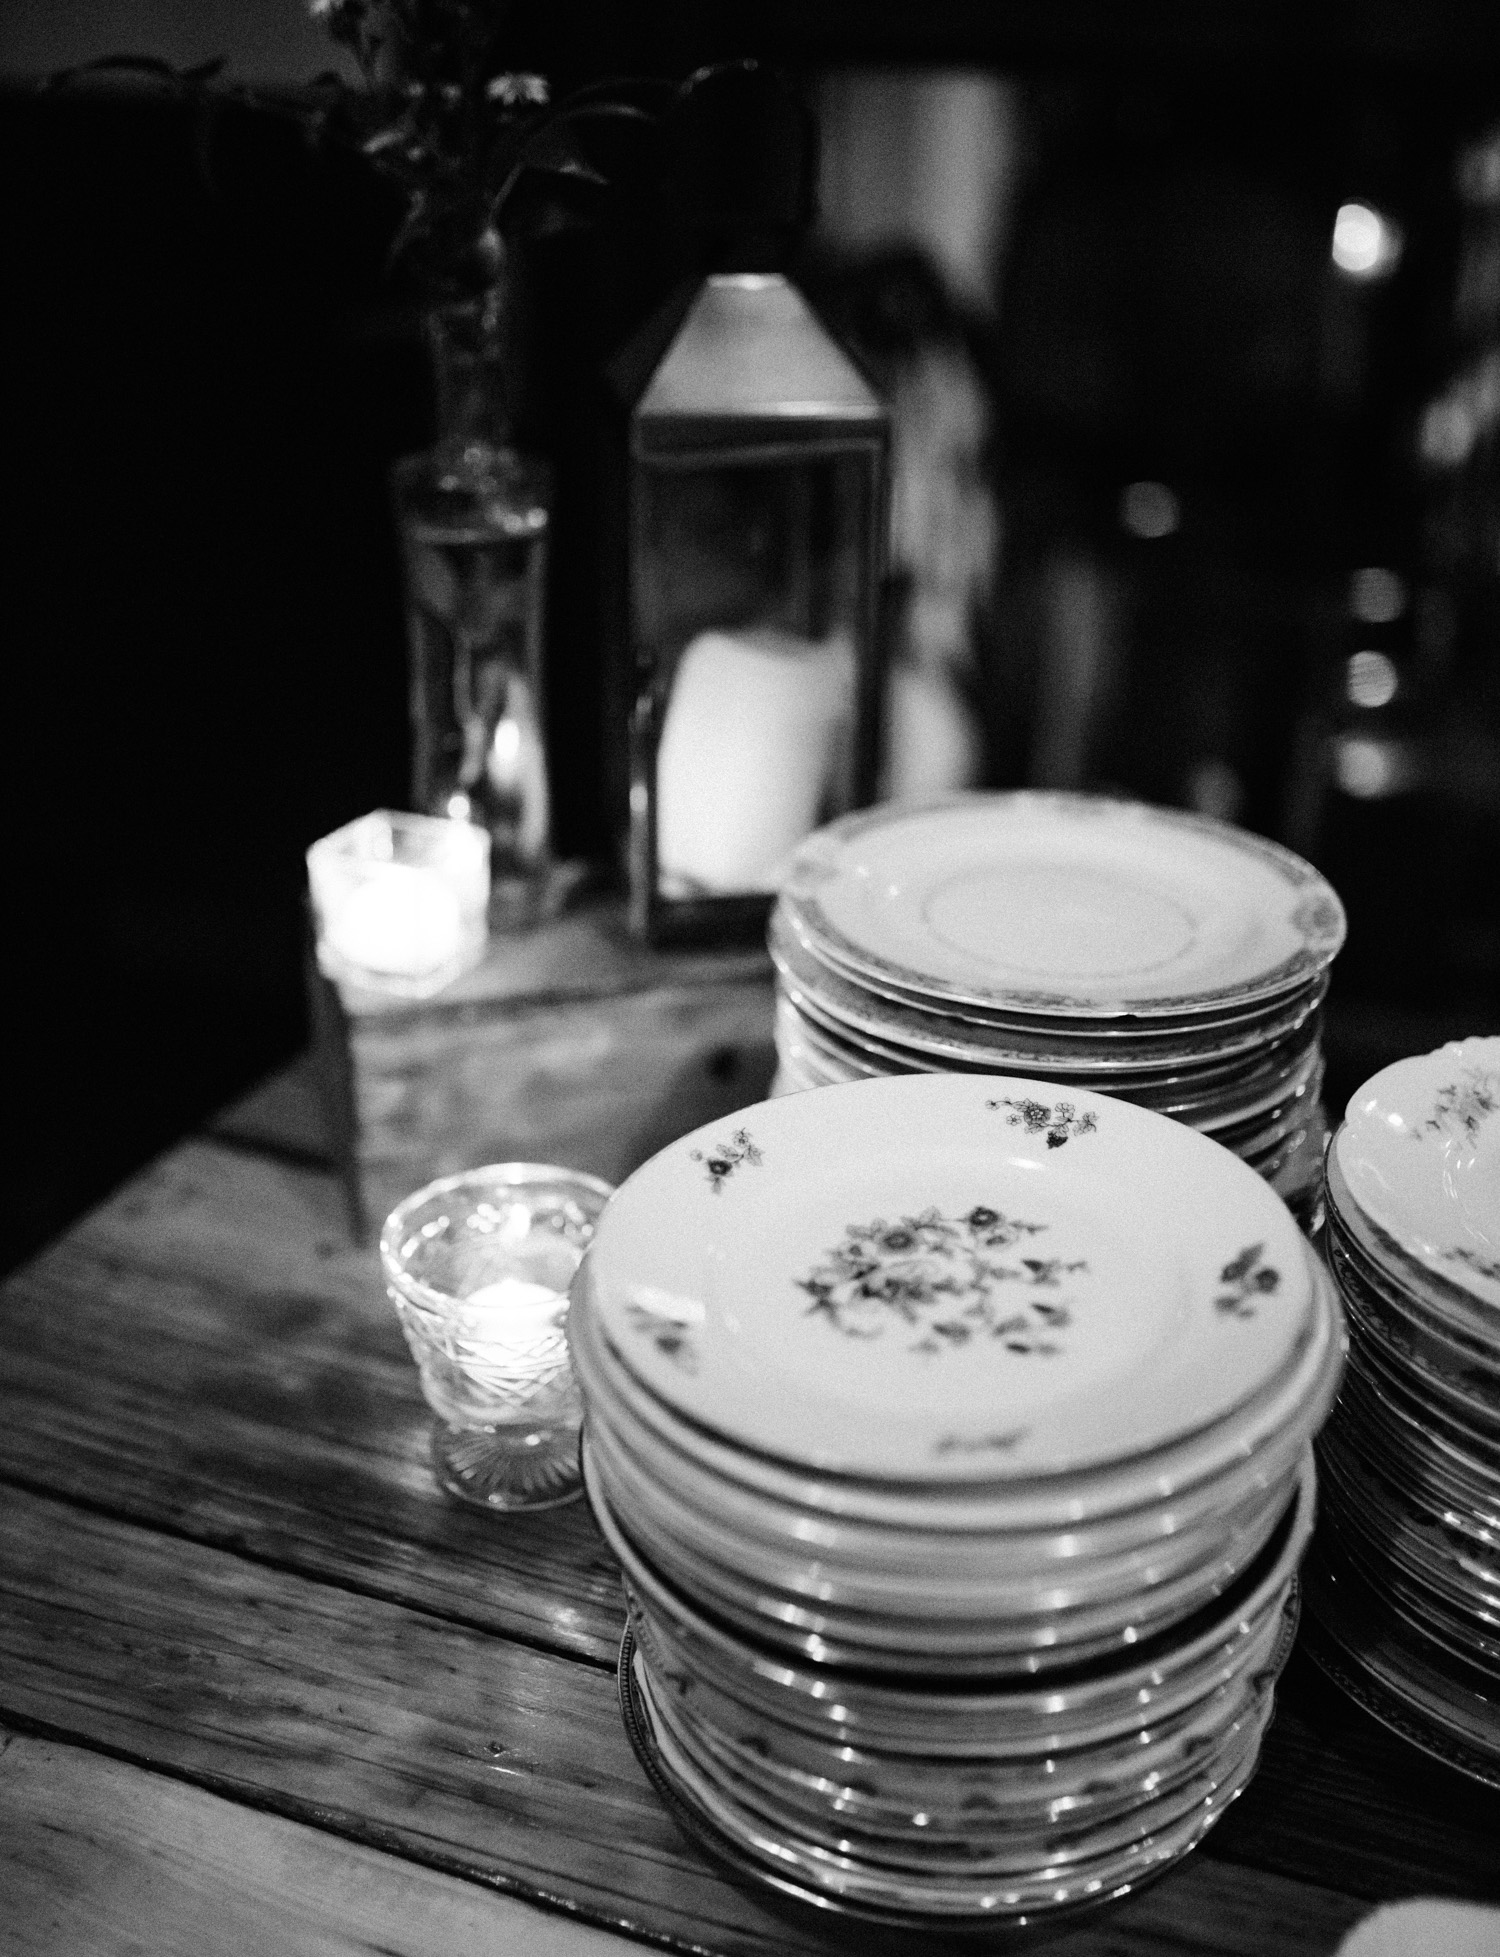 Collected antique plates and candleholders rest on a table during a wedding reception at Brooklyn Winery in New York City